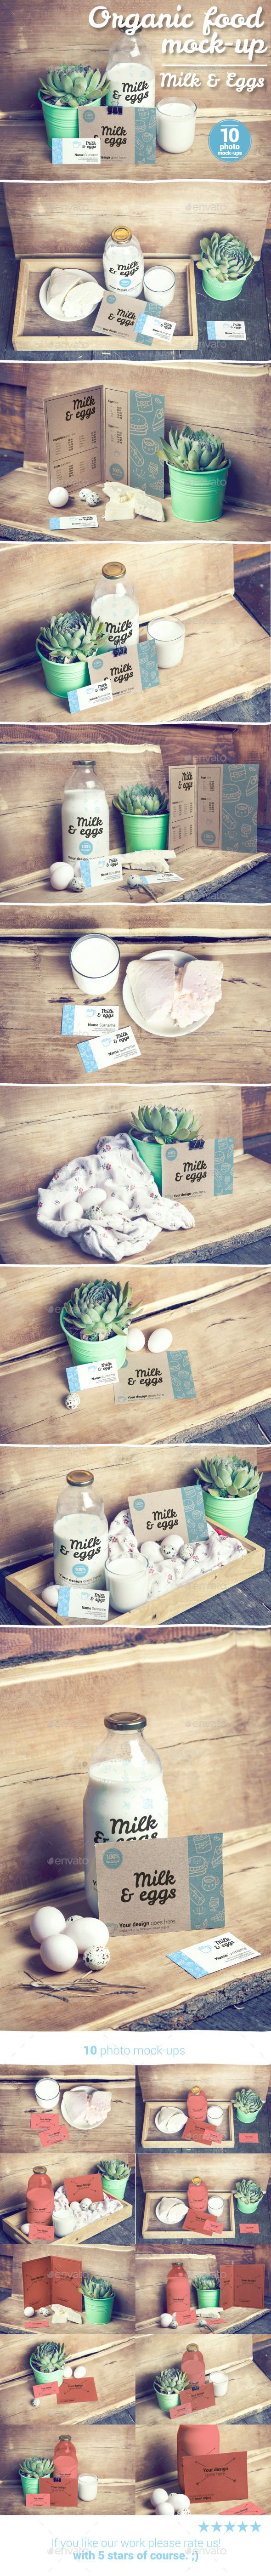 Organic Food Photo Mockup / Milk & Eggs #design #mockups Download: http://graphicriver.net/item/organic-food-photo-mockup-milk-eggs/12650525?ref=ksioks